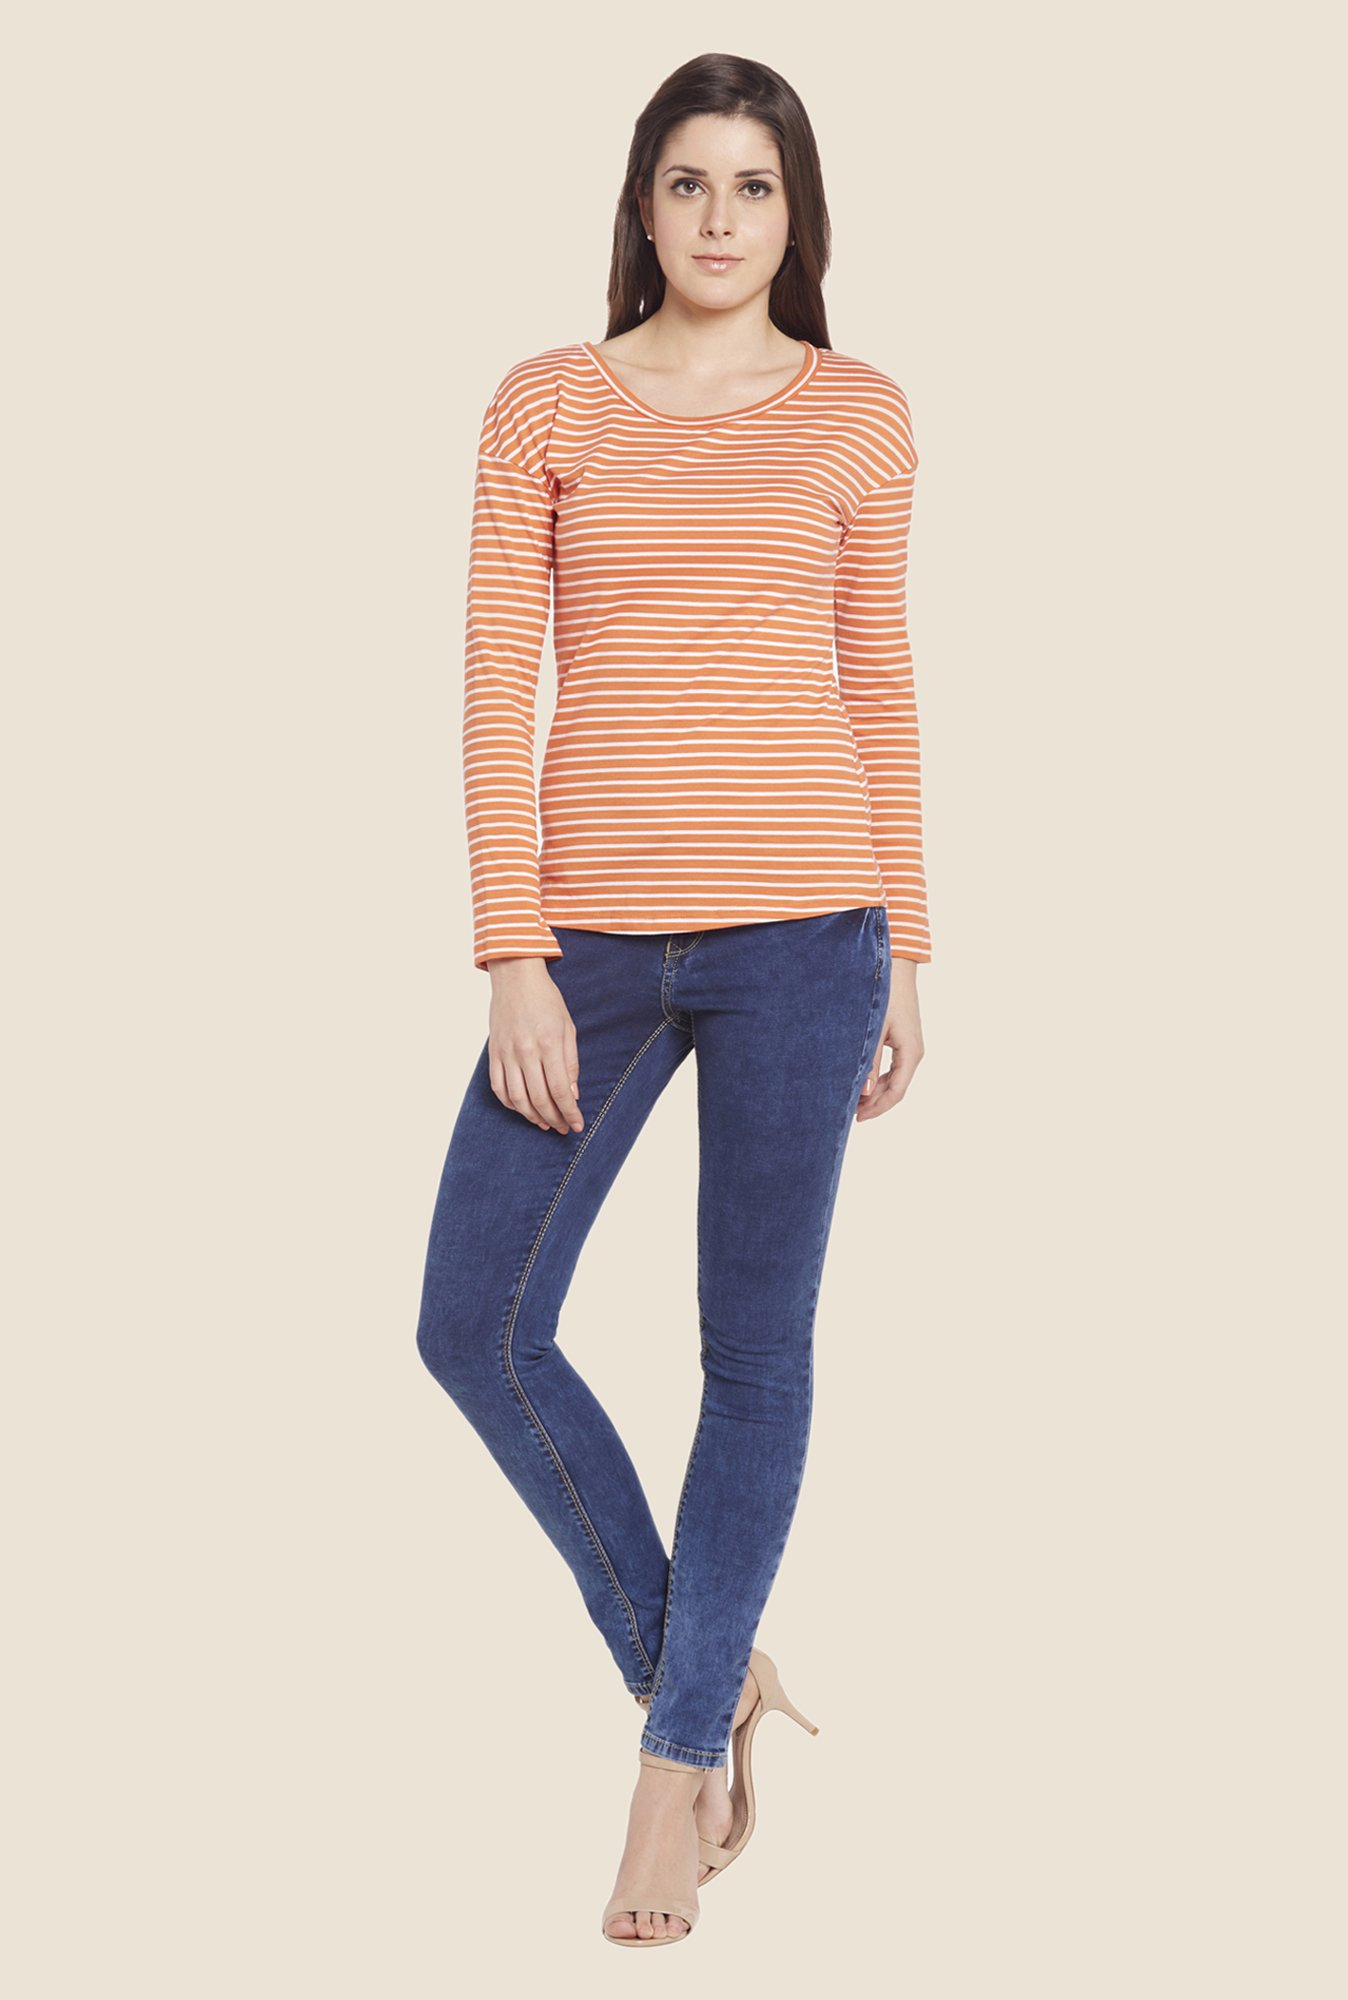 Globus Orange Striped Top